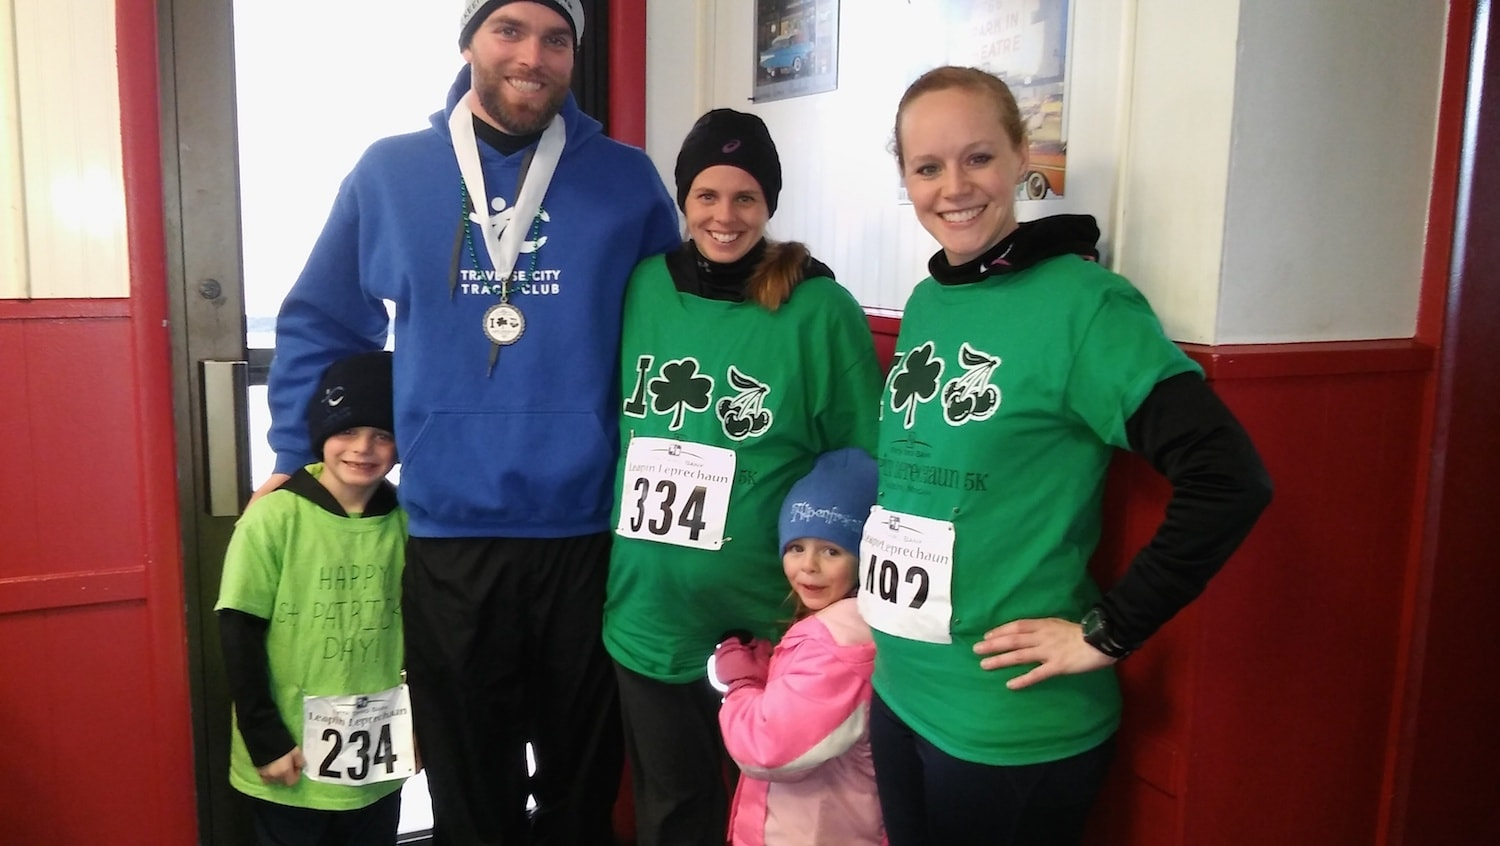 From left: Eric, Chris, Jessica, and Ally Stark with Rebecca Noffke at the finish of the March 2017 Leapin' Leprechaun Race.